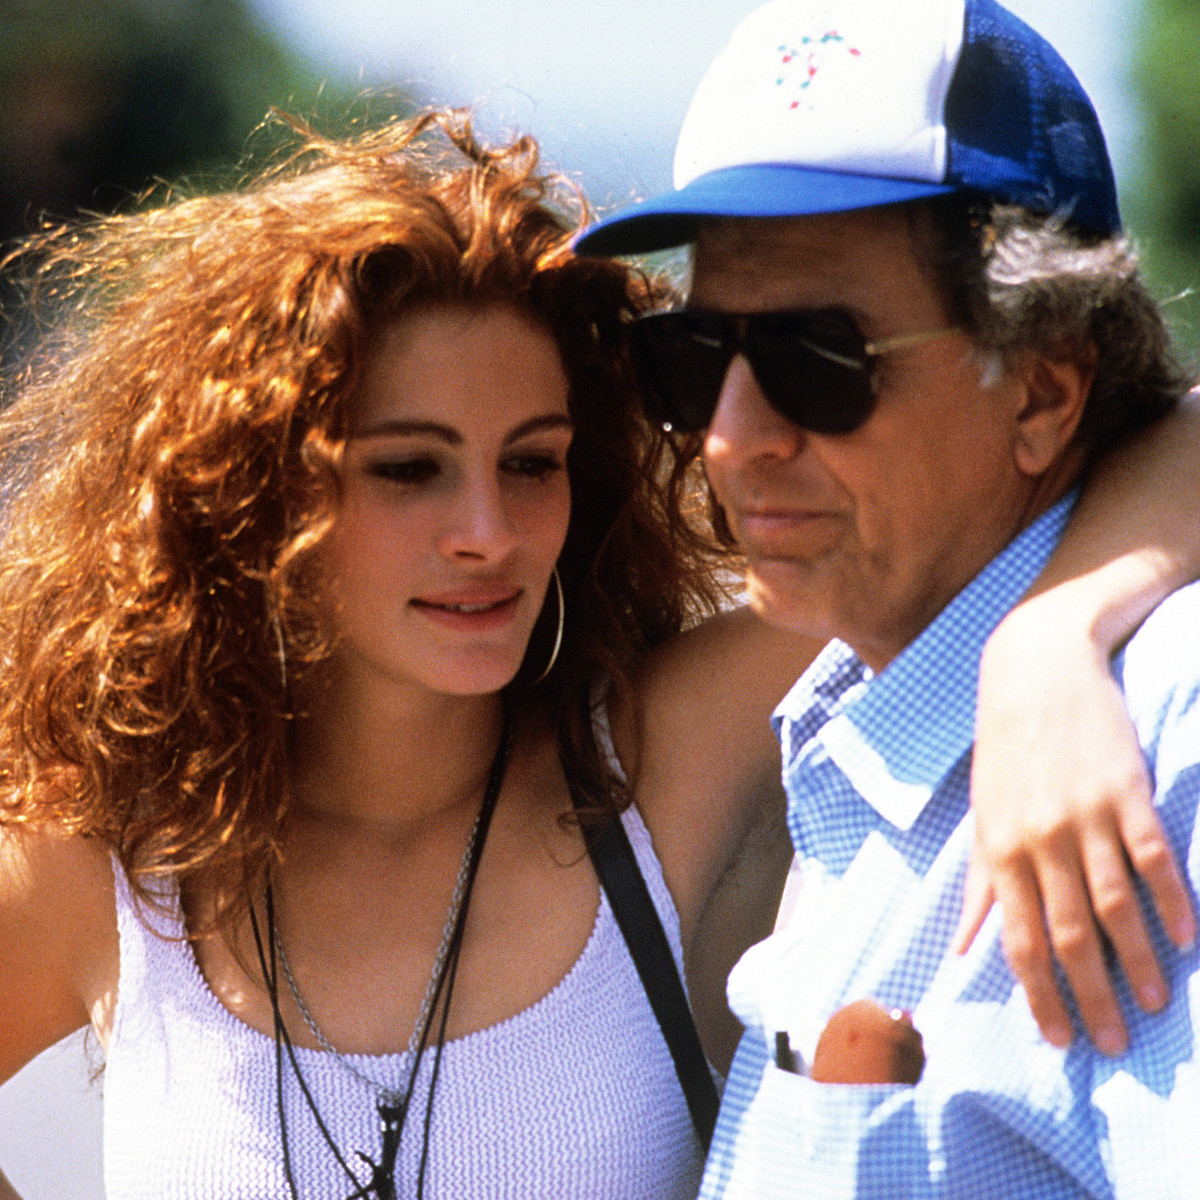 Julia Roberts, director Garry Marshall on set of Pretty Woman